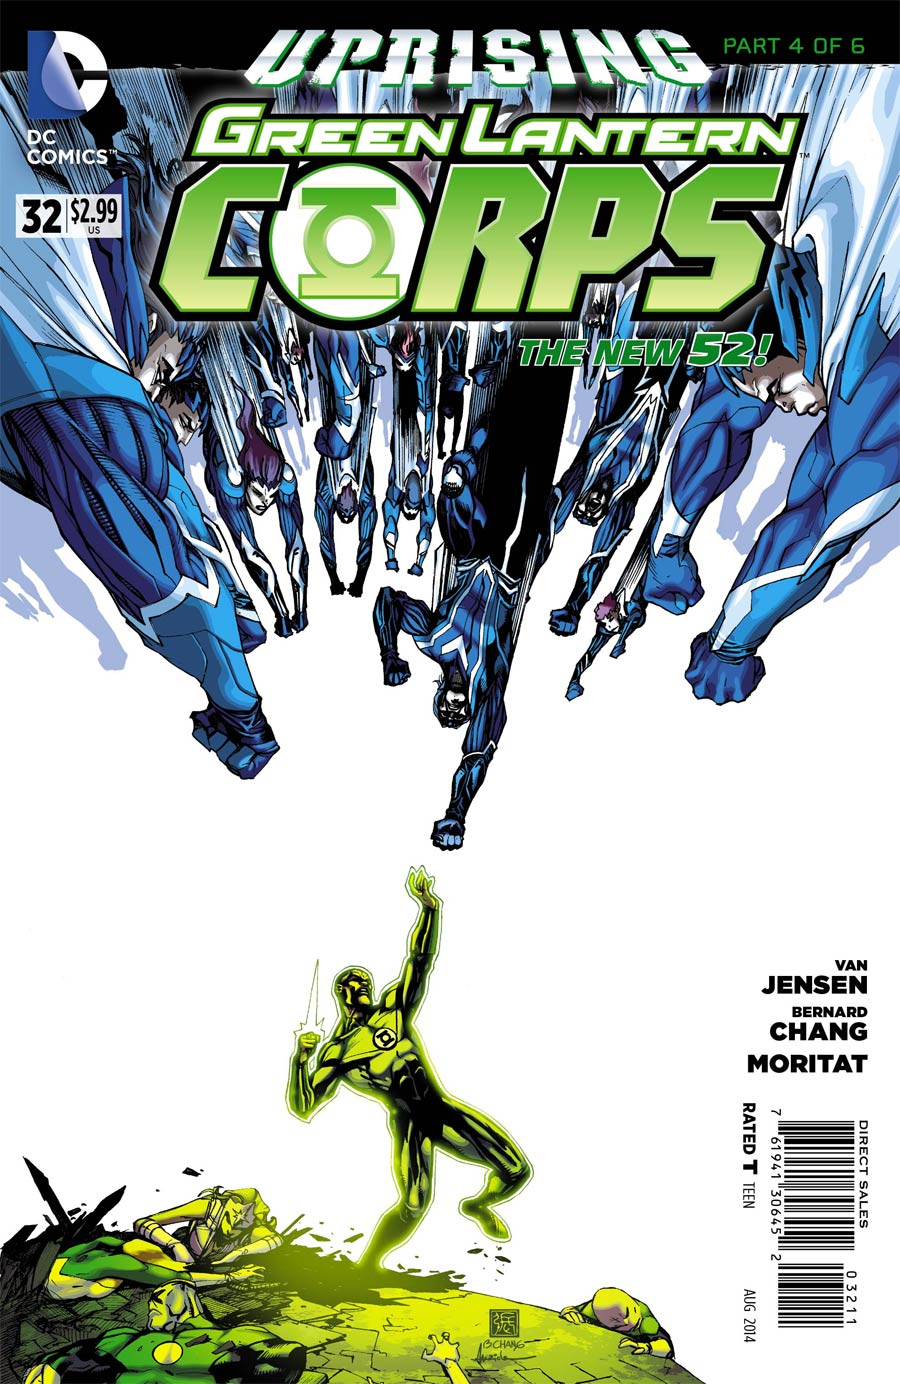 Green Lantern Corps Vol 3 #32 Cover A Regular Bernard Chang Cover (Uprising Part 4)